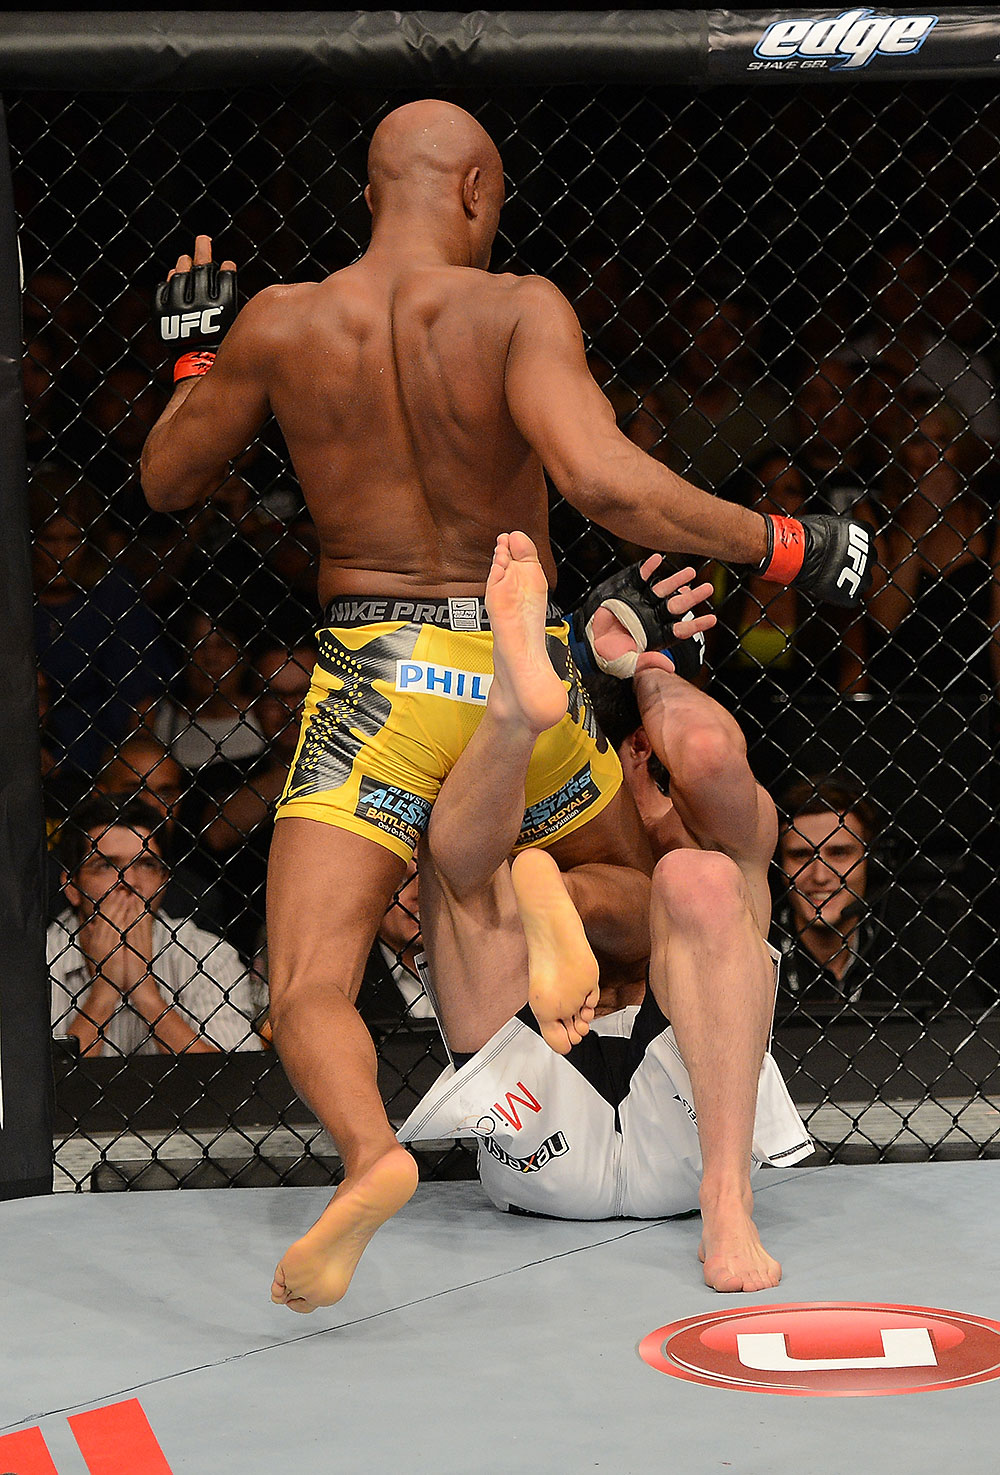 LAS VEGAS, NV - JULY 7:   (L-R) Anderson Silva hits Chael Sonnen with a knee during their UFC middleweight championship bout at UFC 148 inside MGM Grand Garden Arena on July 7, 2012 in Las Vegas, Nevada.  (Photo by Donald Miralle/Zuffa LLC/Zuffa LLC via Getty Images)  *** Local Caption *** Anderson Silva; Chael Sonnen